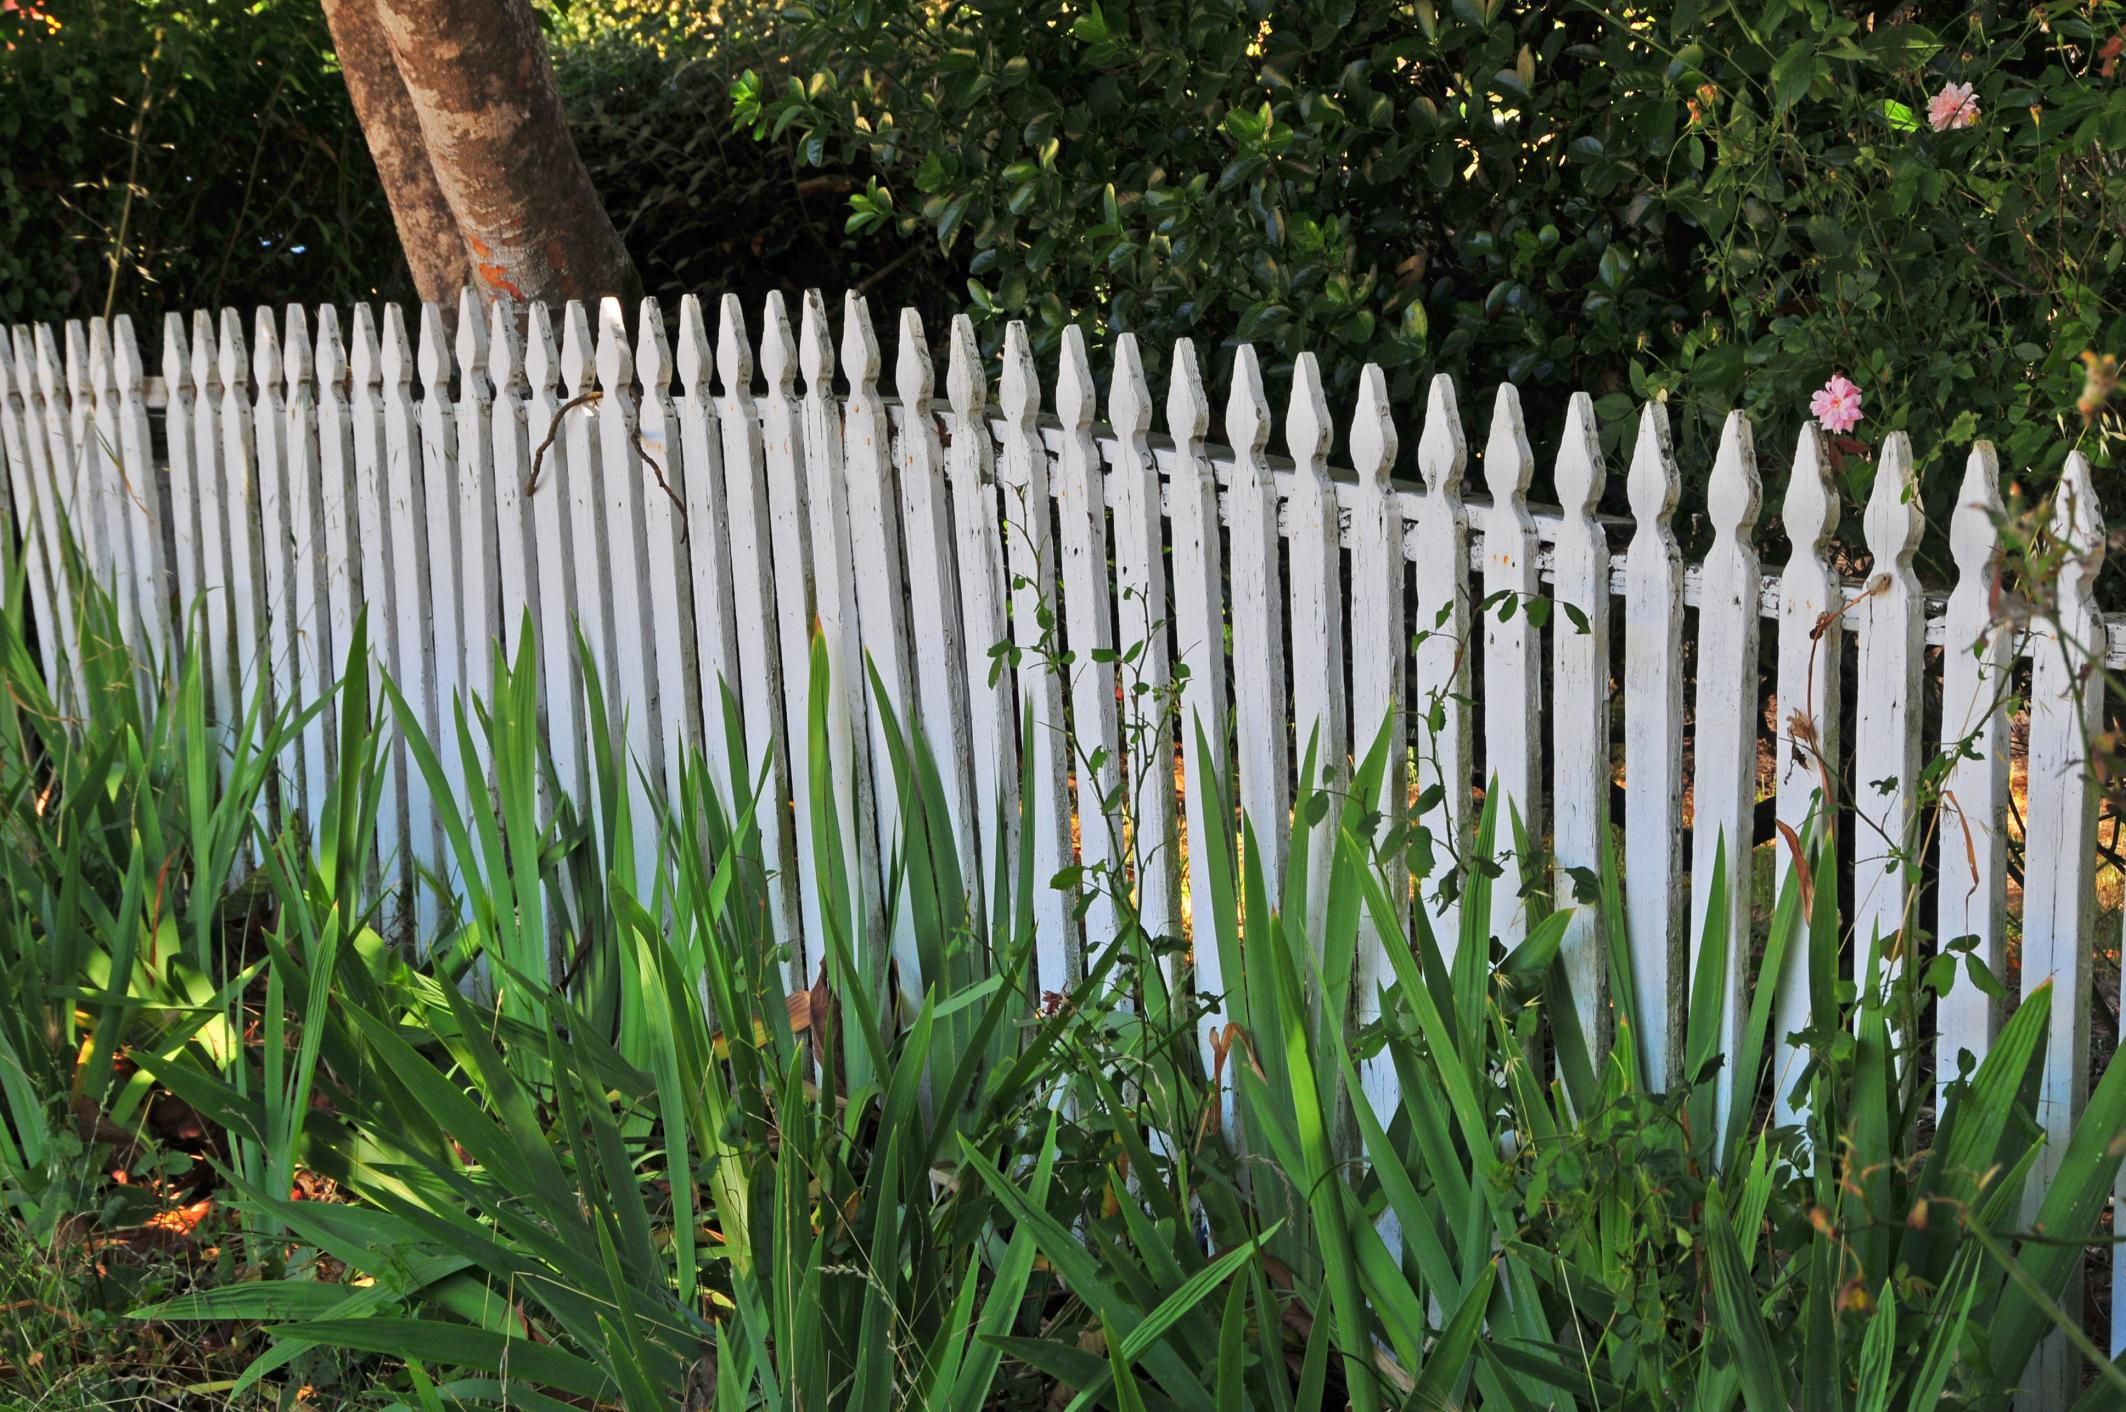 Fence Building Permits